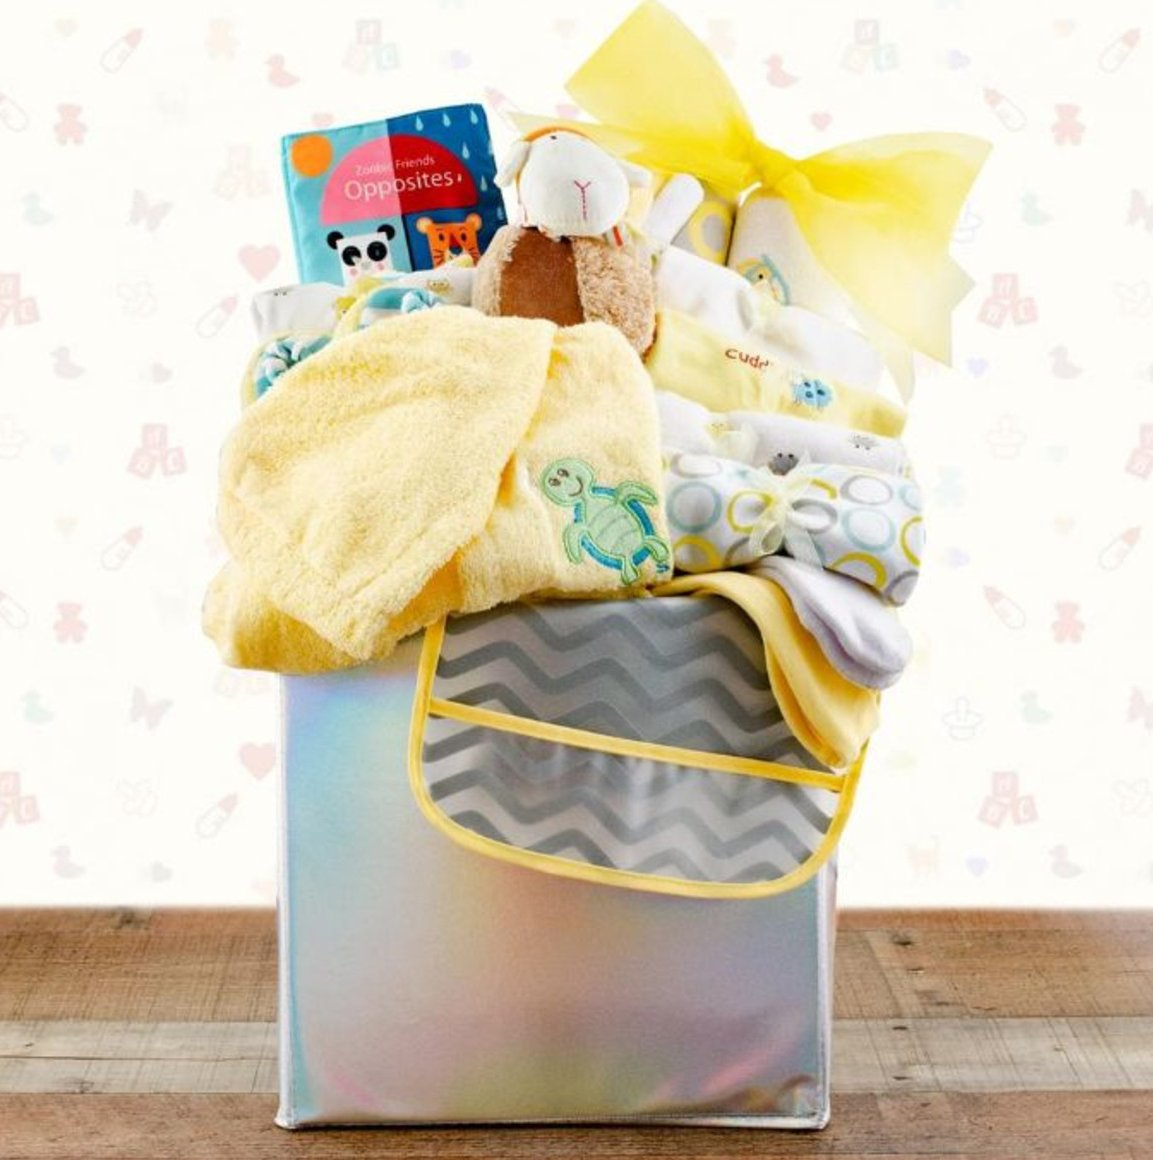 Image 0 of Baby's First Wardrobe: New Baby Gift Basket